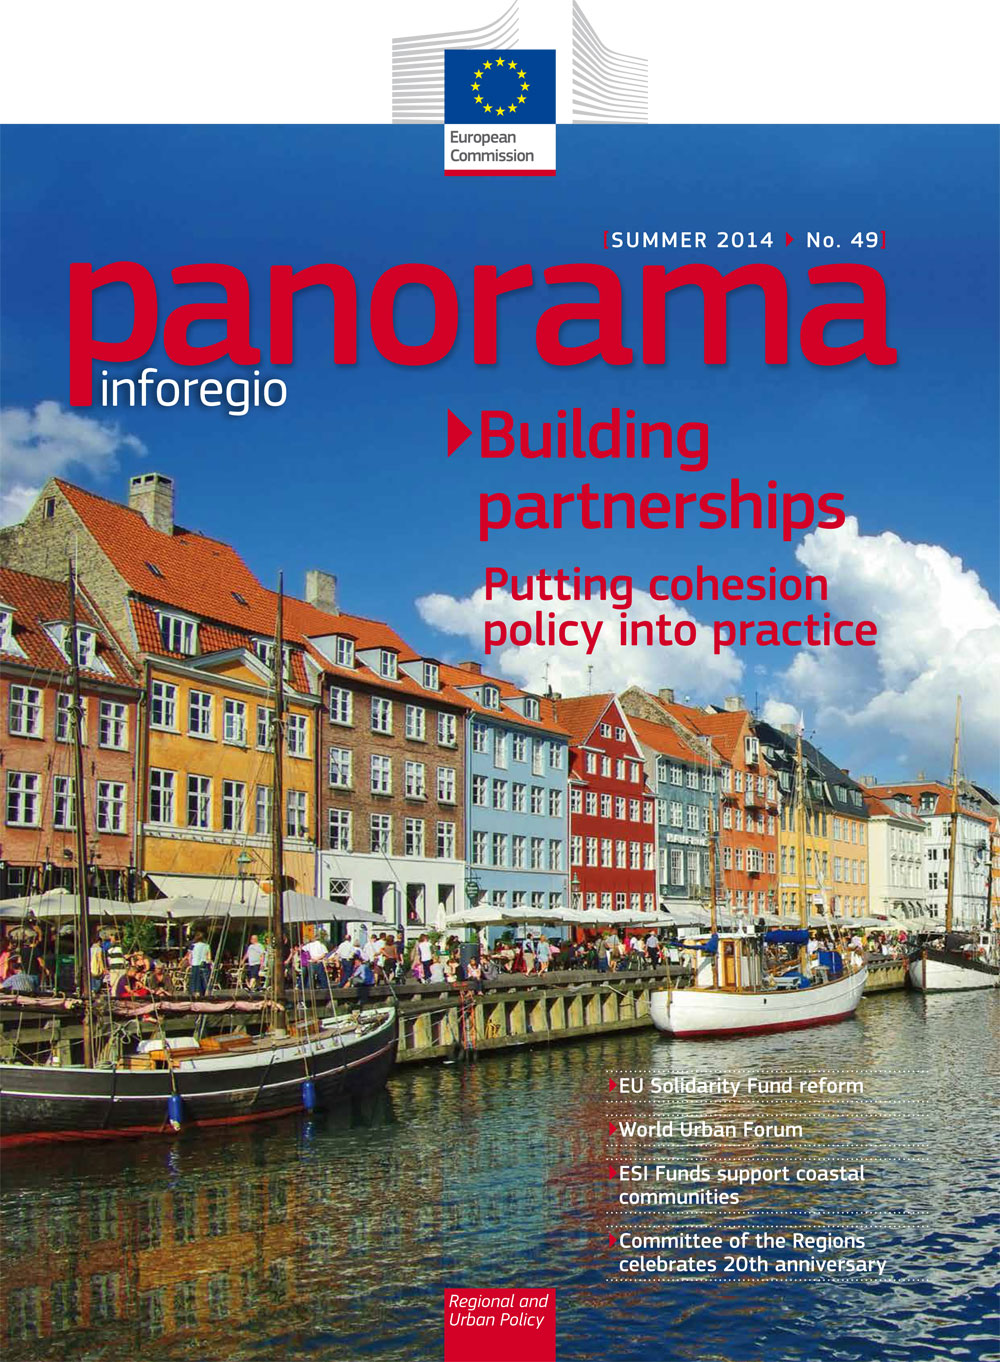 PANORAMA - The Magazine for the actors of regional development - Summer edition